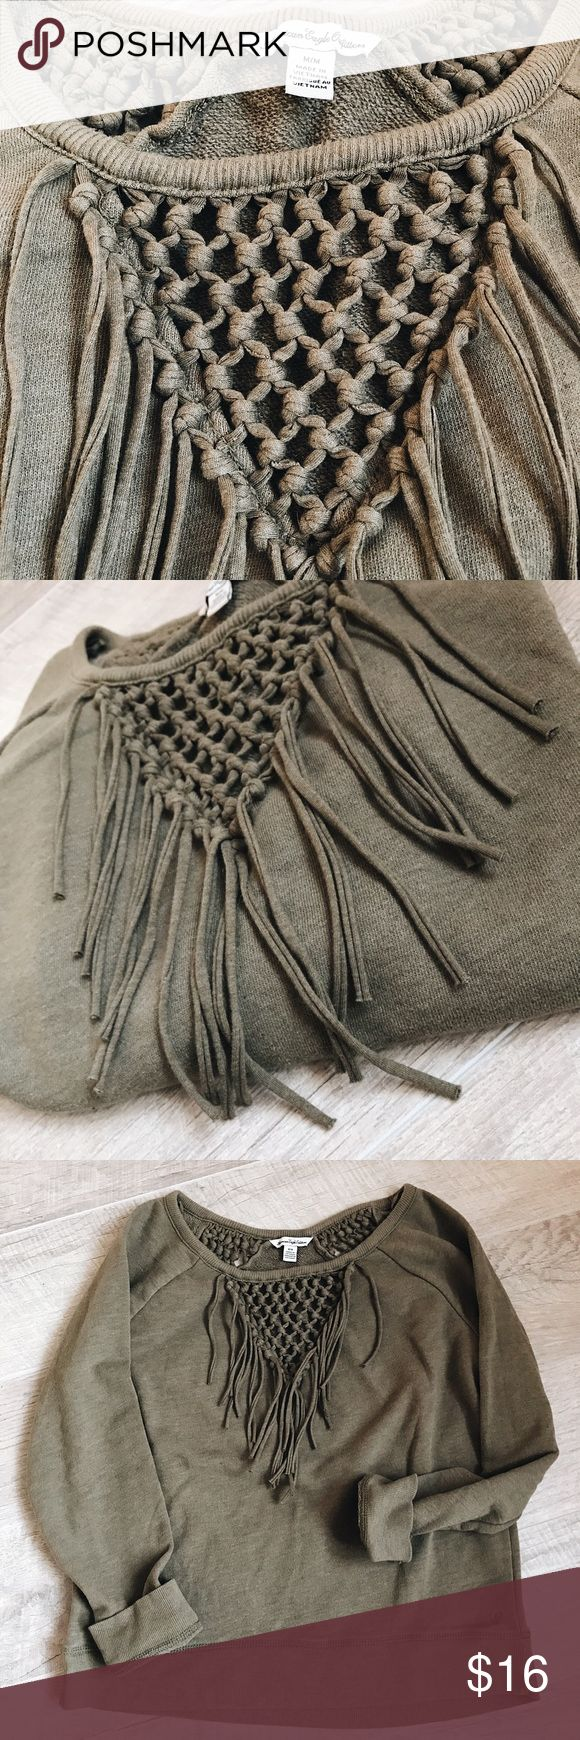 American Eagle 🦅 Outfitters fringe sweatshirt Army green fringe sweatshirt! AEO! Crochet & fringe front✔️crochet back✔️wear with shorts, jeans, leggings! Great for those chilly summer nights! 🌙 Size M. 21'L, 18 1/2' armpit to armpit, 24'L arms. Offers are welcome! ✌🏼no trades thank you American Eagle Outfitters Tops Sweatshirts & Hoodies